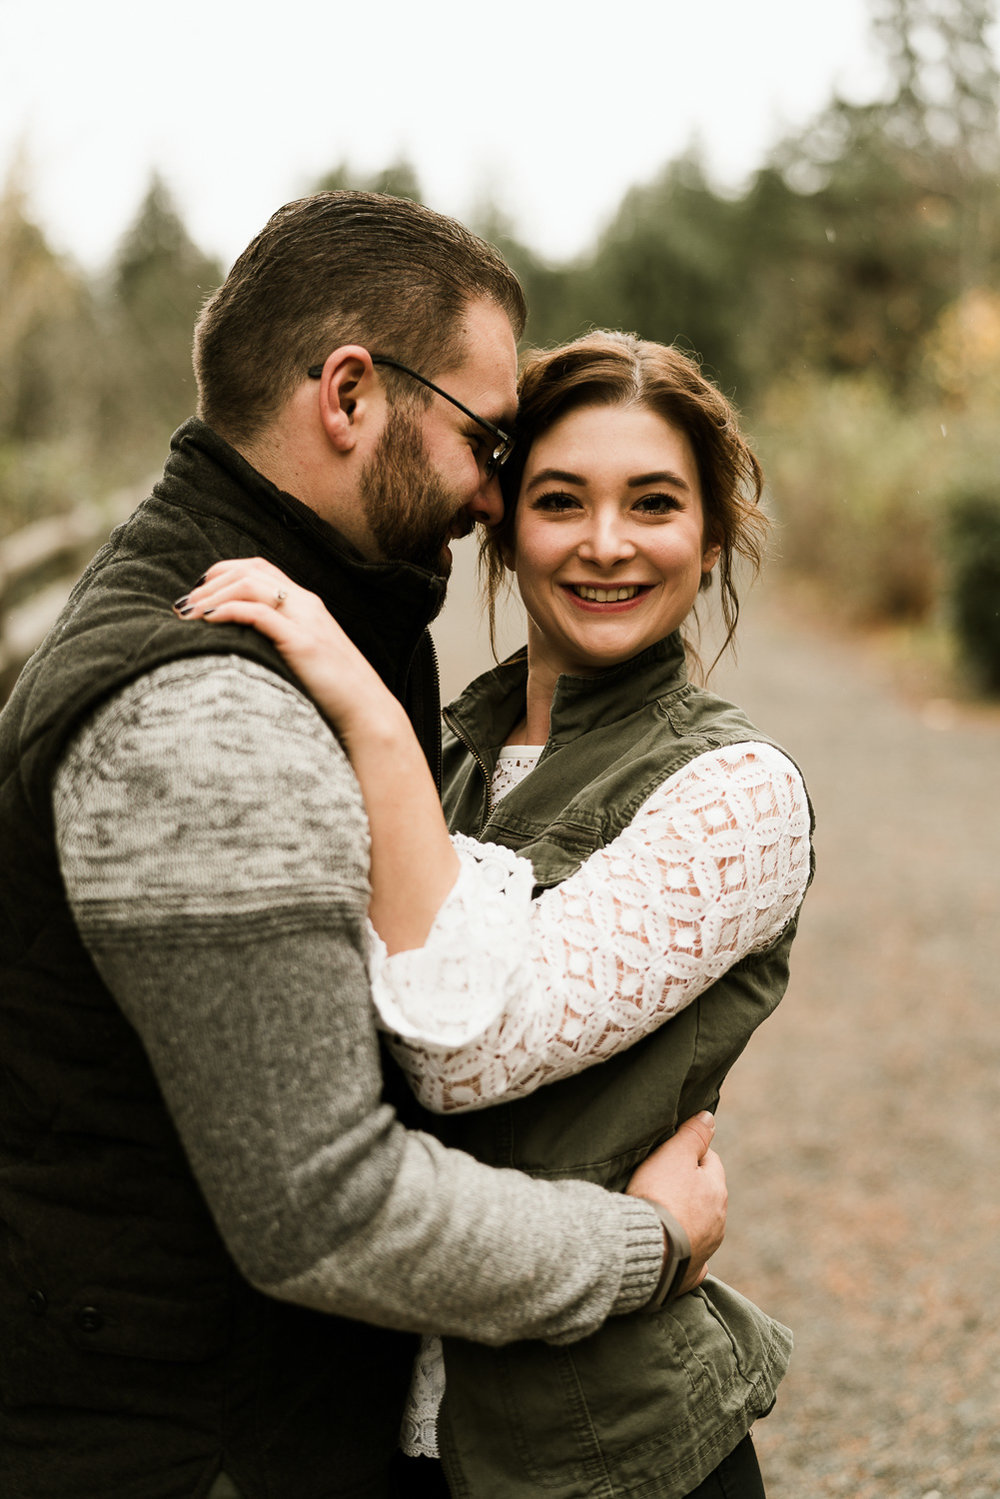 A Picturesque PNW Engagement Session | Snoqualmie Falls | Seattle Wedding photographer-1.jpg